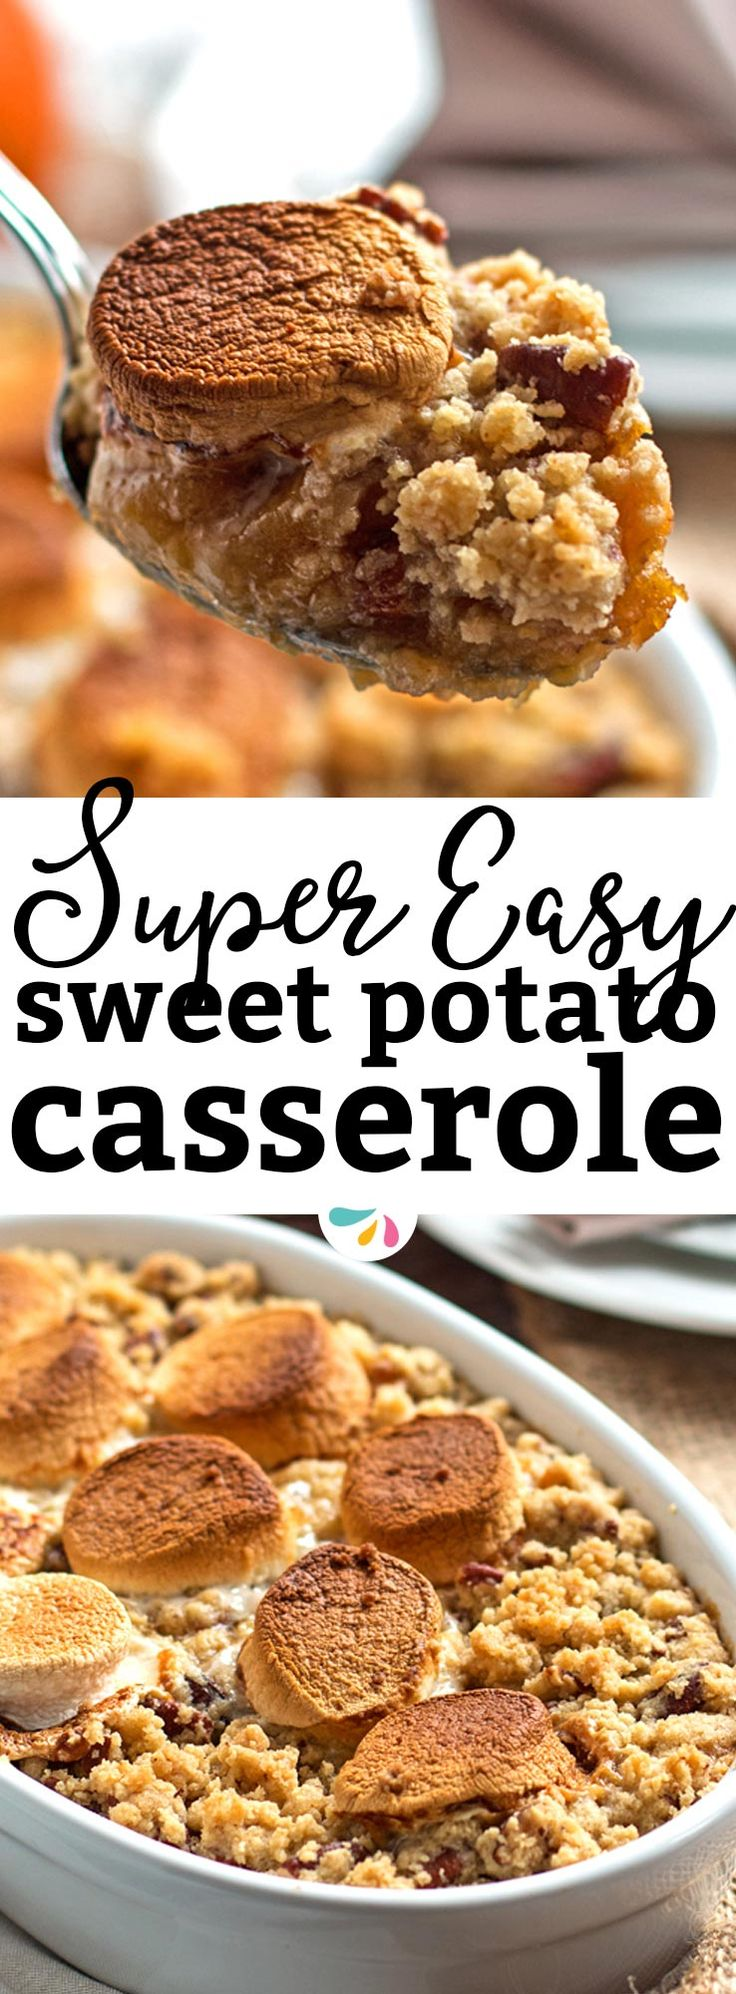 This Sweet Potato Casserole recipe is an absolute stunner! It's with both marshmallows and with a crumbly brown sugar pecan topping. making this the best Thanksgiving side dish ever! It's simple, quick and easy to whip up as it's all made in a food proces